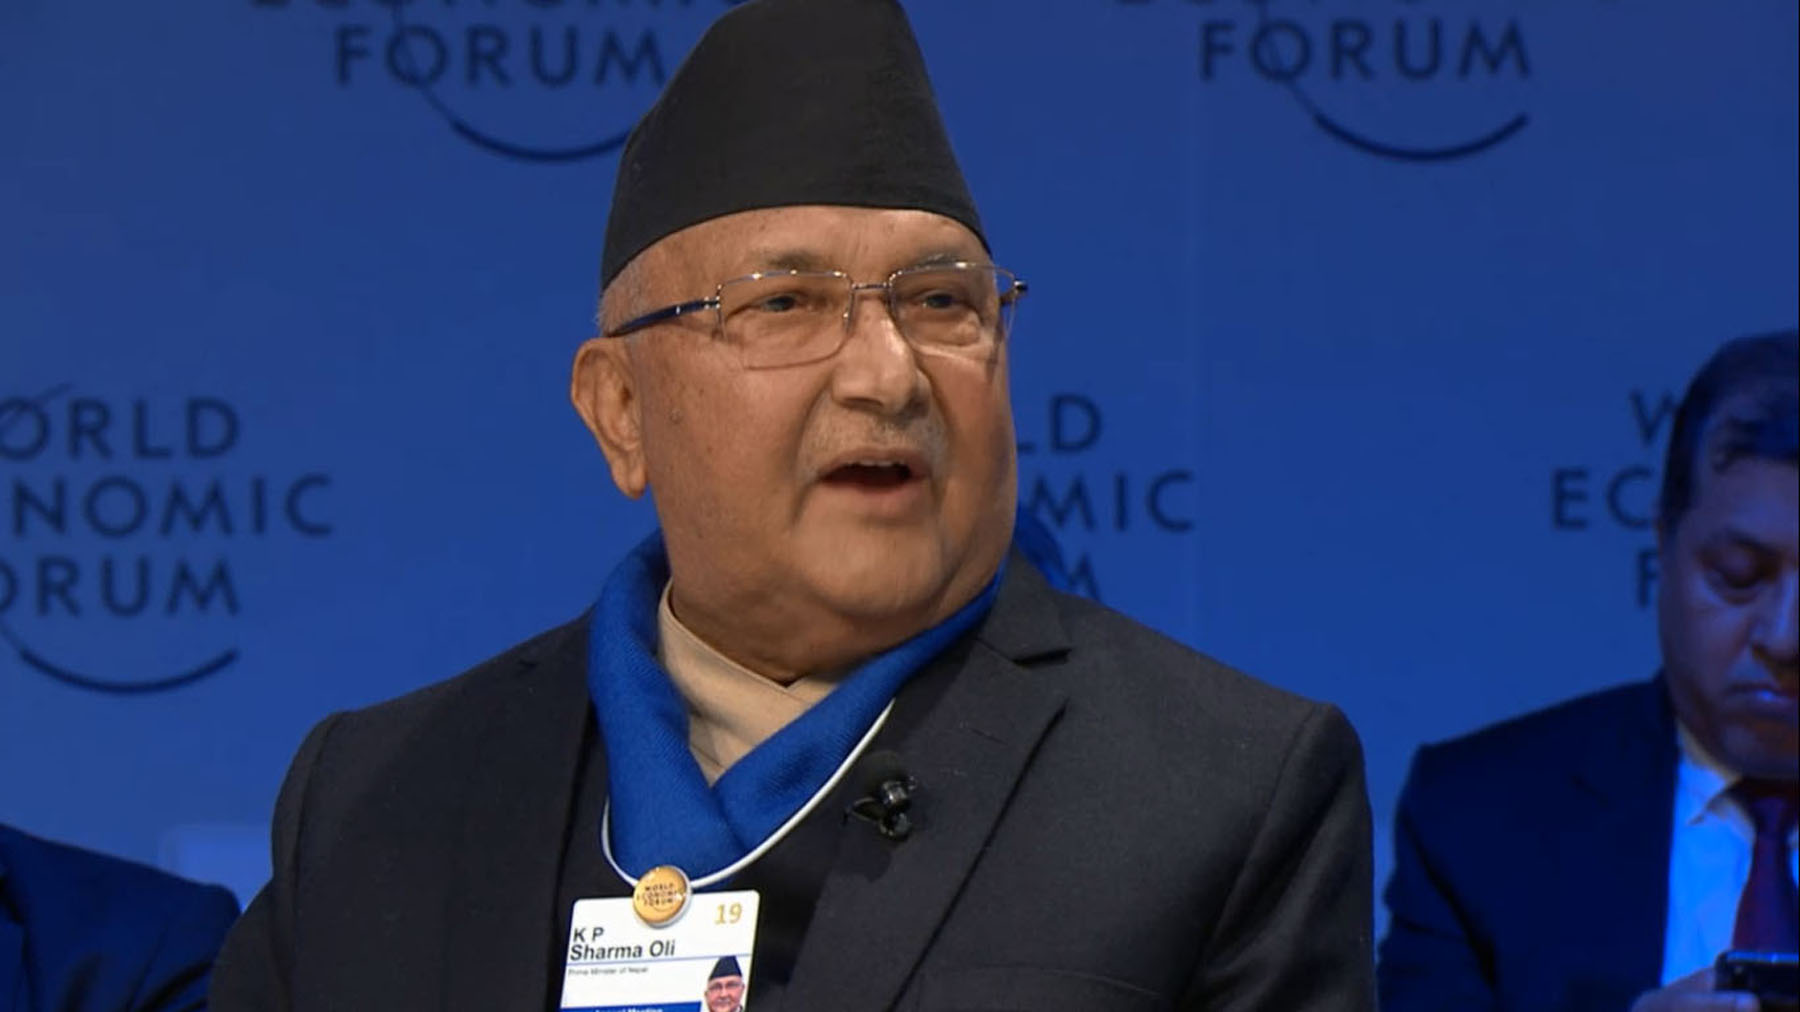 Nepal inviting foreign investment and technology transfer: PM Oli